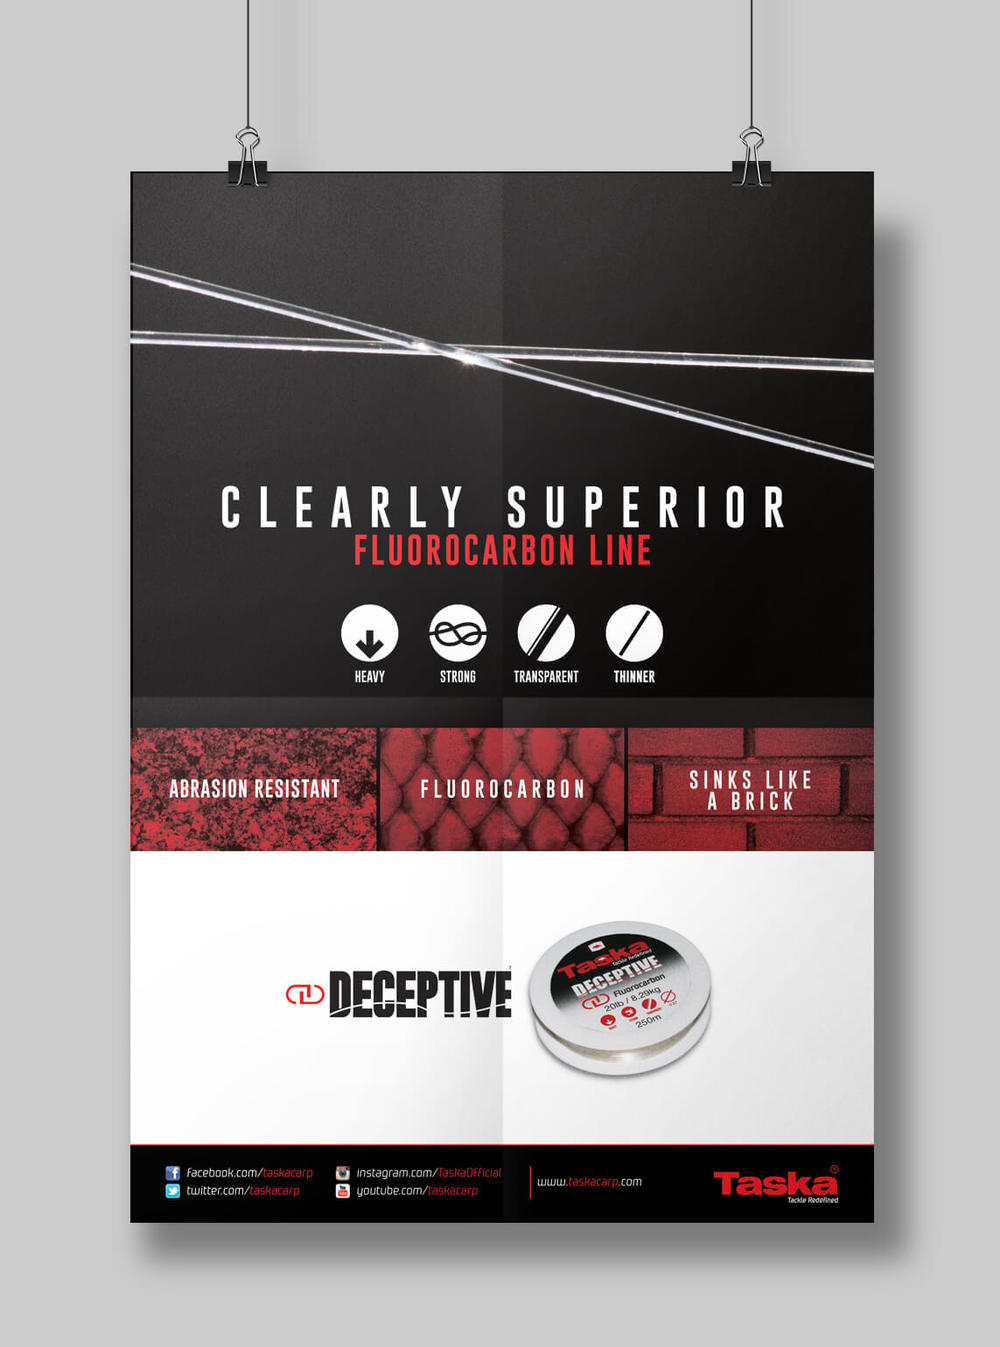 Graphic design poster artwork for Taska's product launch of Deceptive.